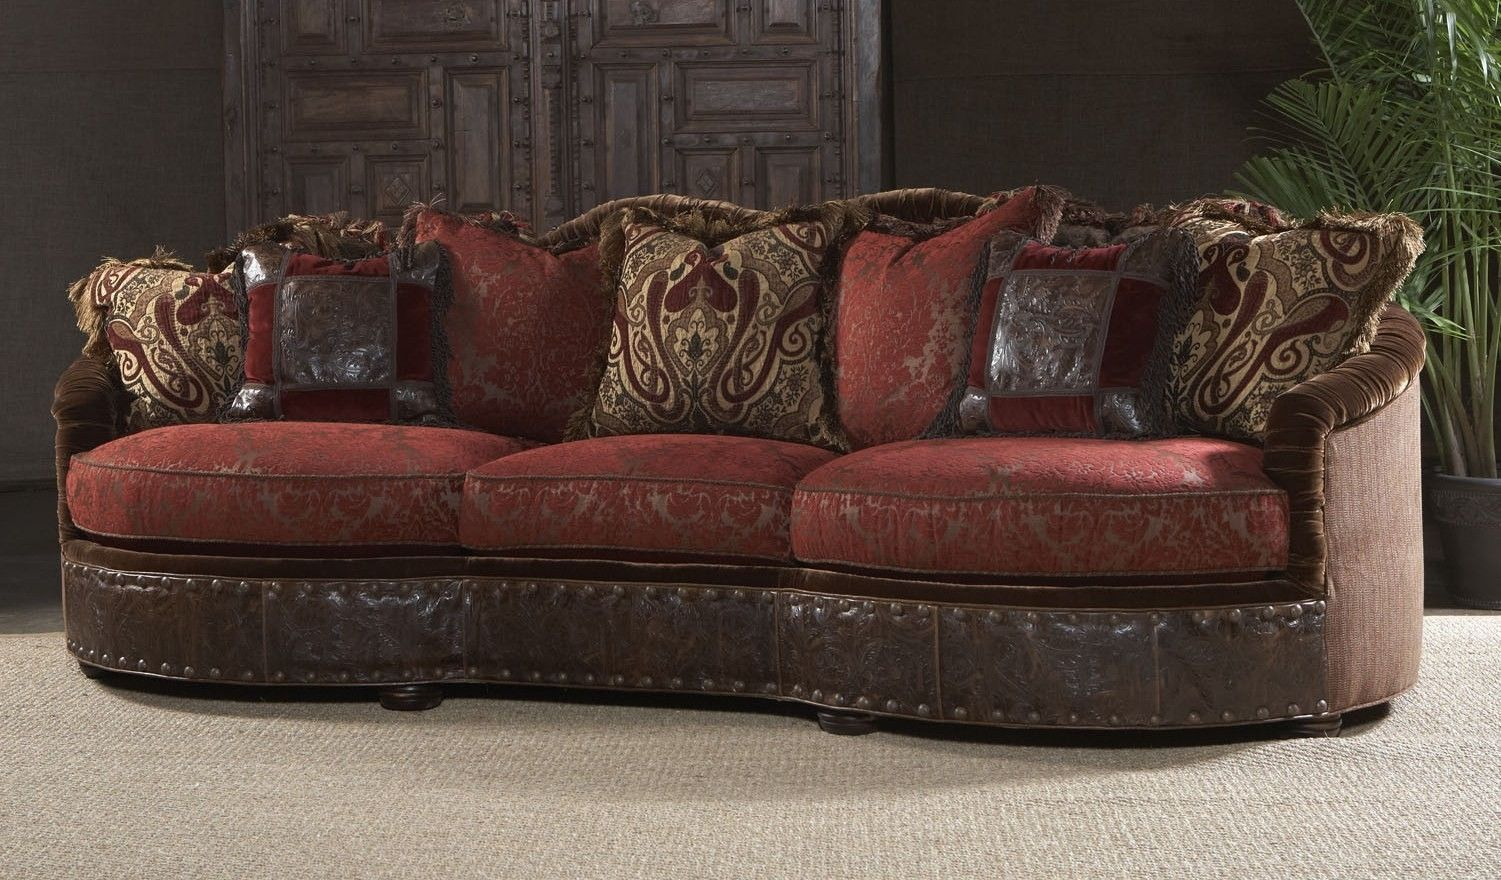 Hand crafted luxury furniture sofa couch and decorative for Luxury decorative throw pillows